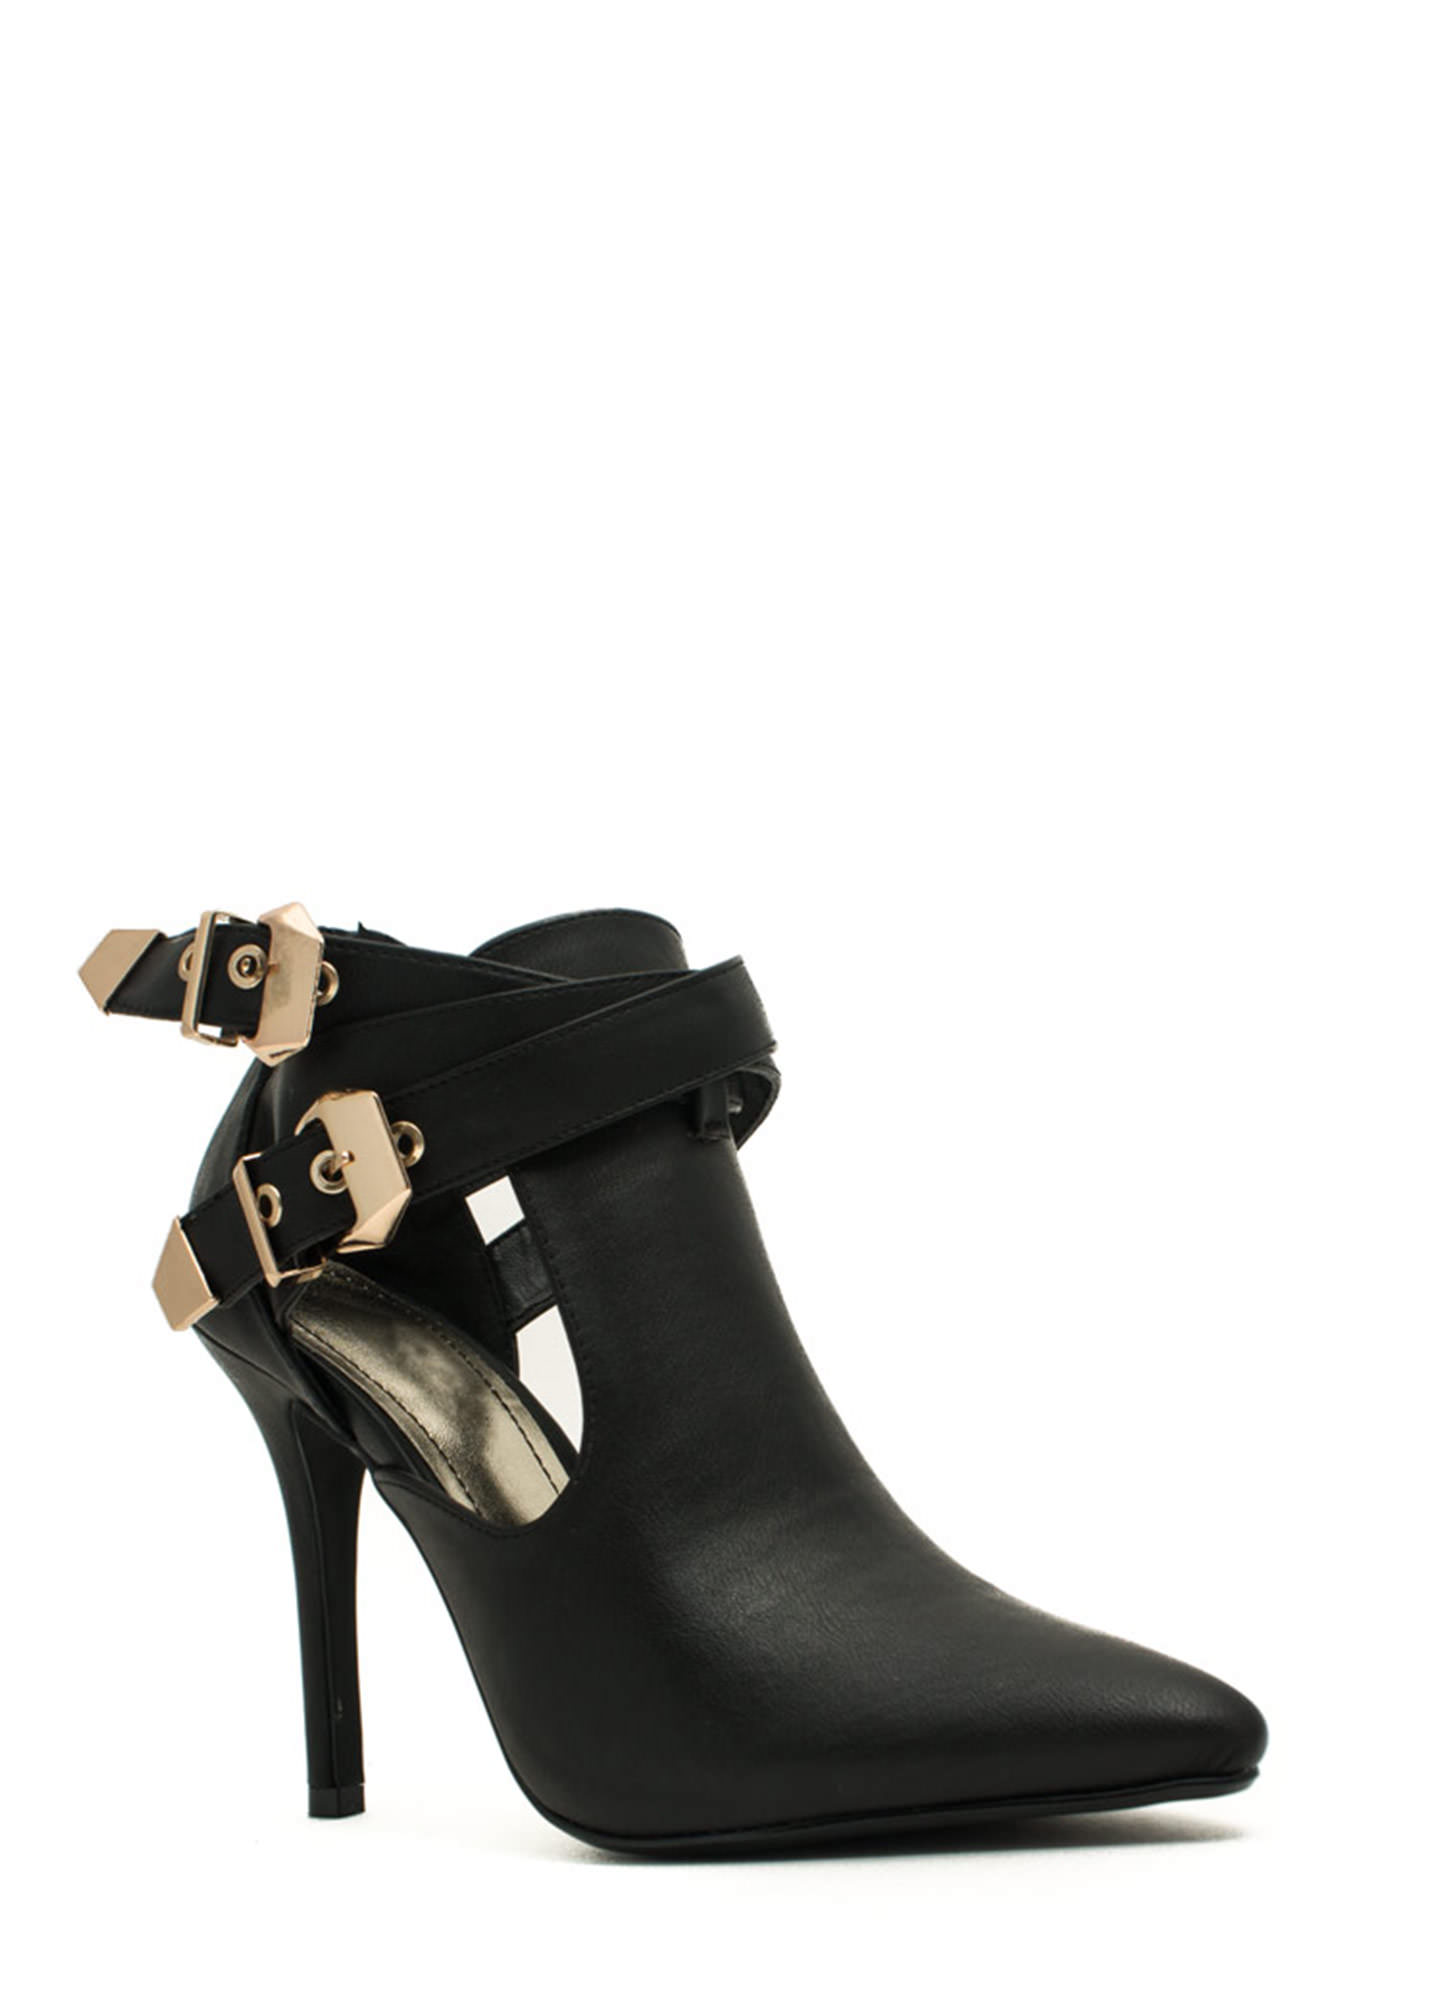 Edgy Girl Faux Leather Stiletto Booties BLACK